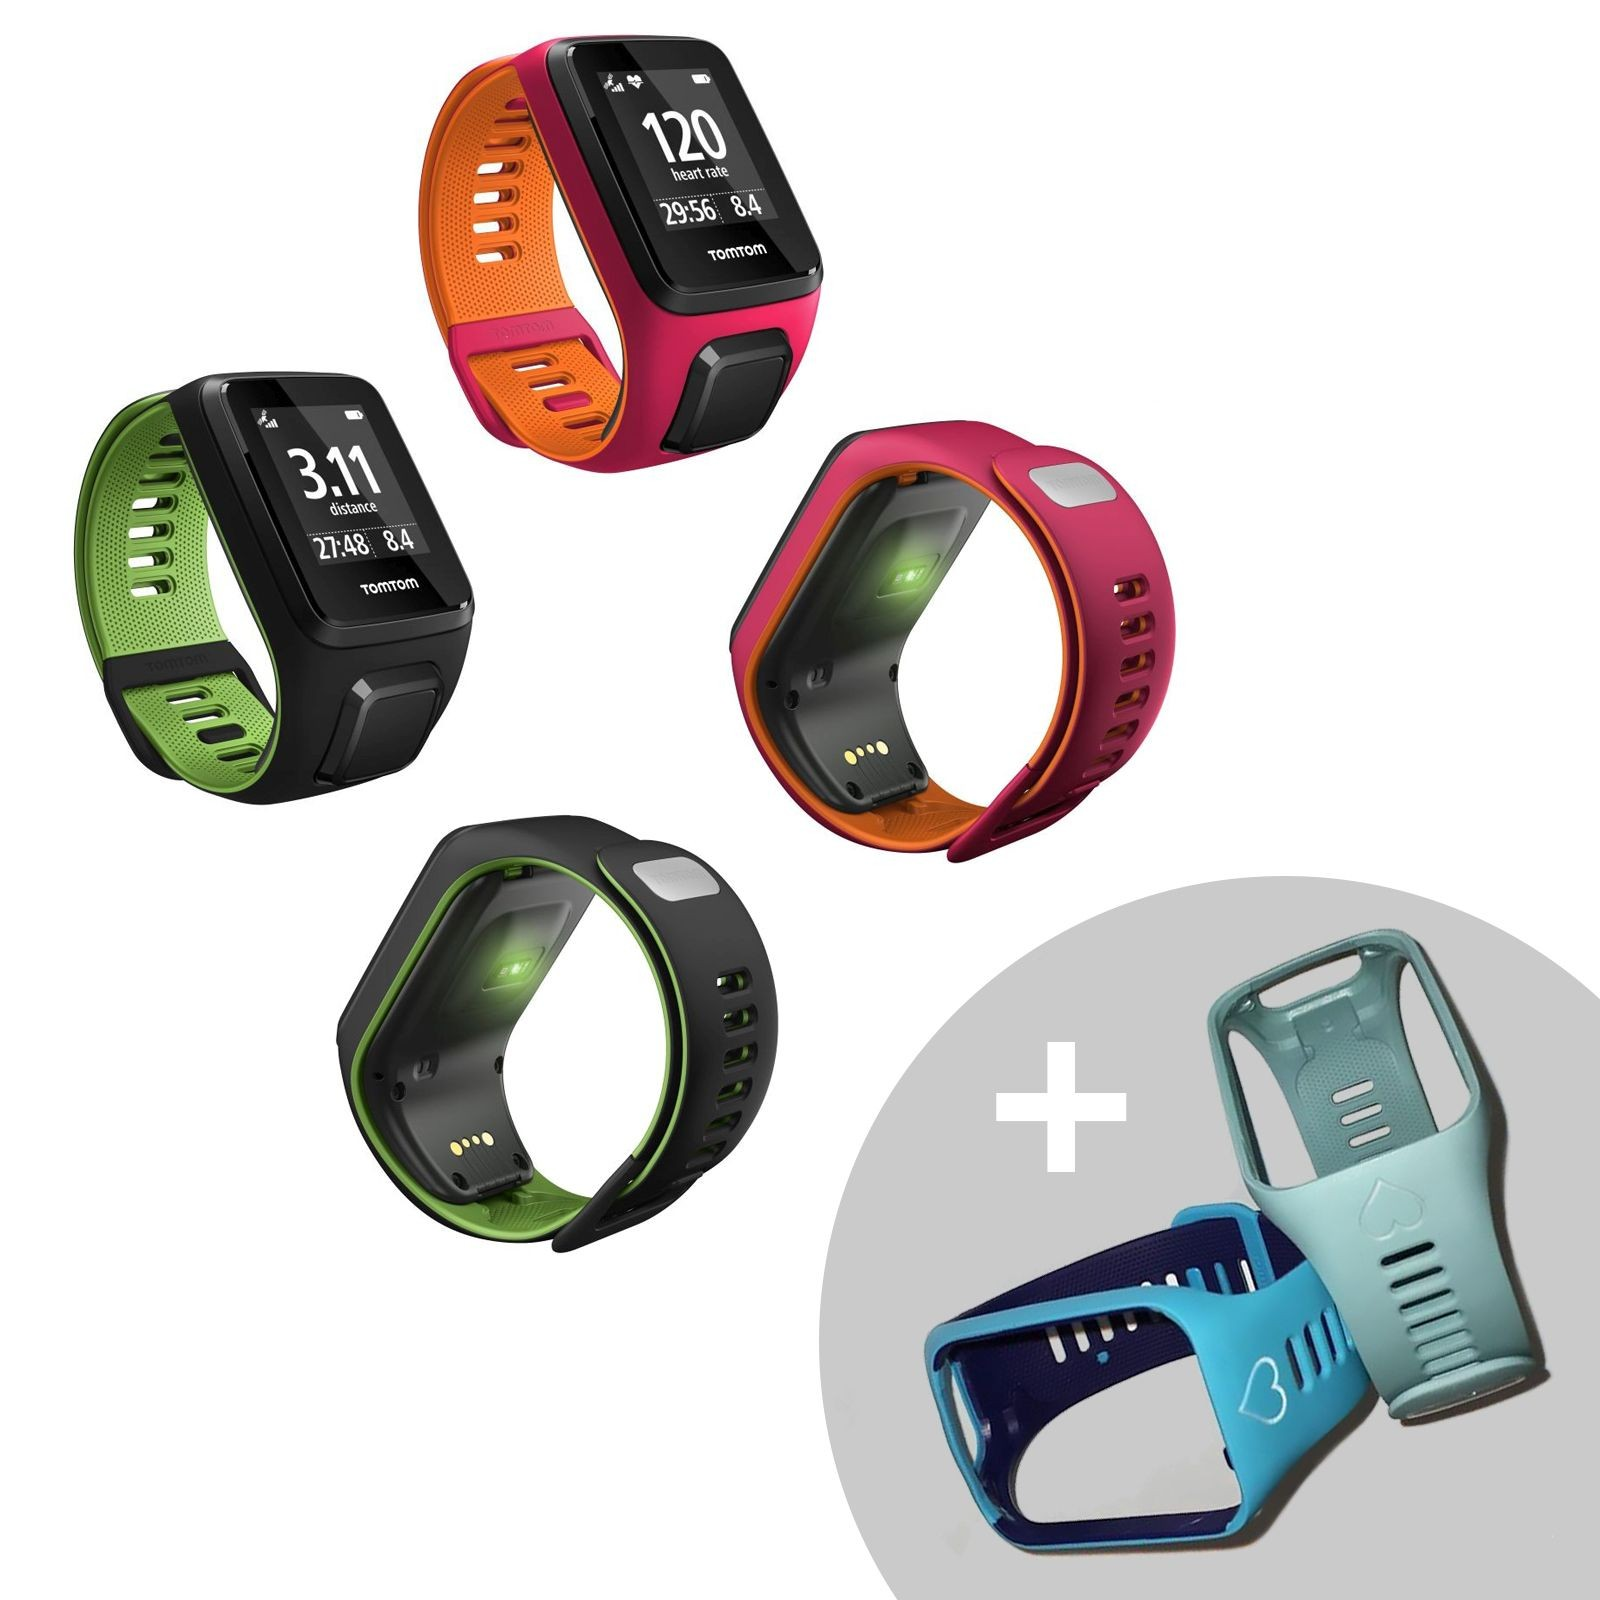 tomtom runner 3 cardio montre de sport gps acheter bon prix chez fitshop. Black Bedroom Furniture Sets. Home Design Ideas